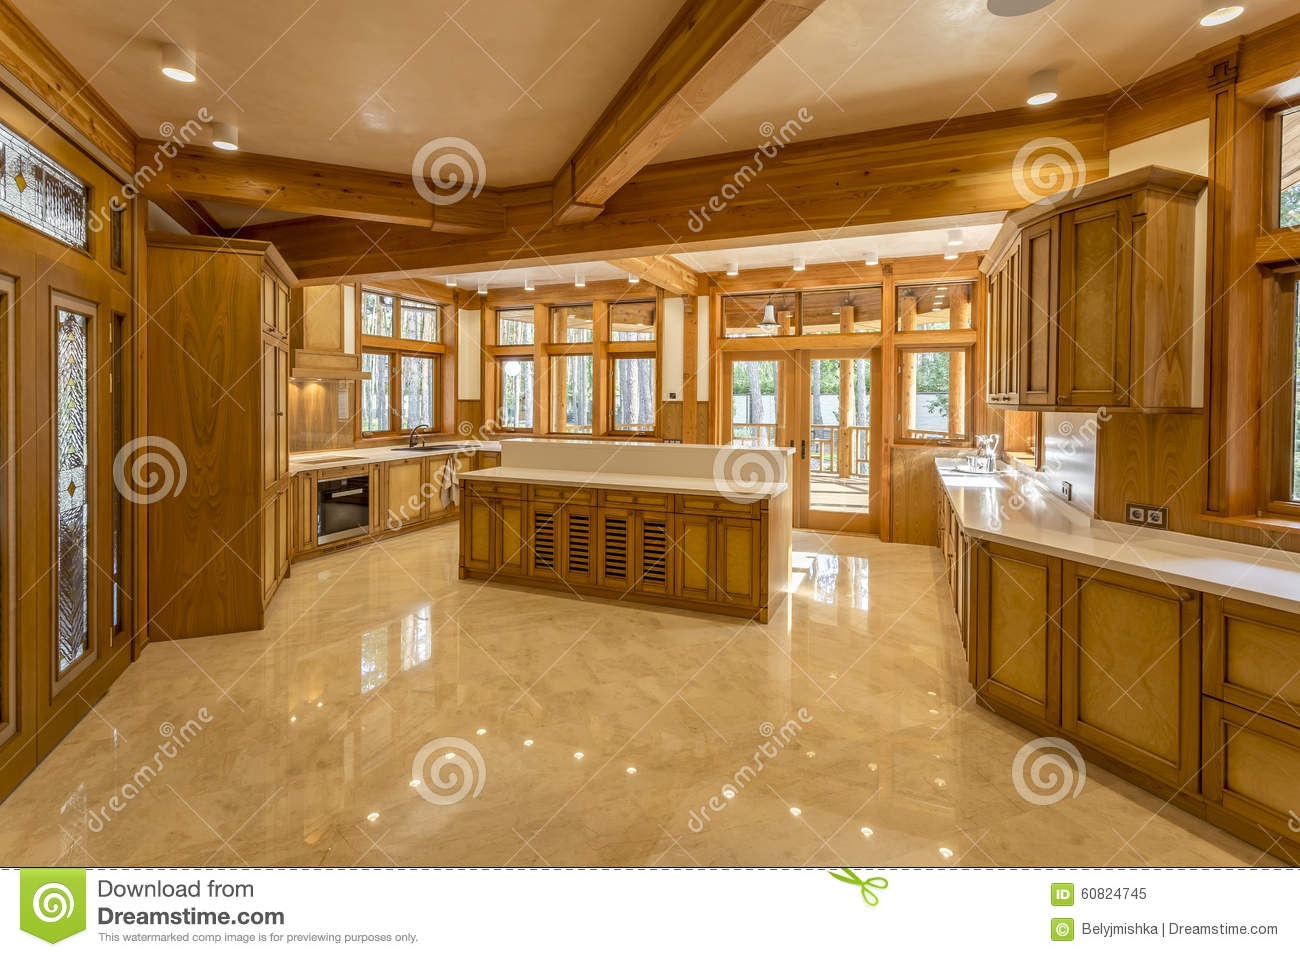 Kitchen made of wood in eco house